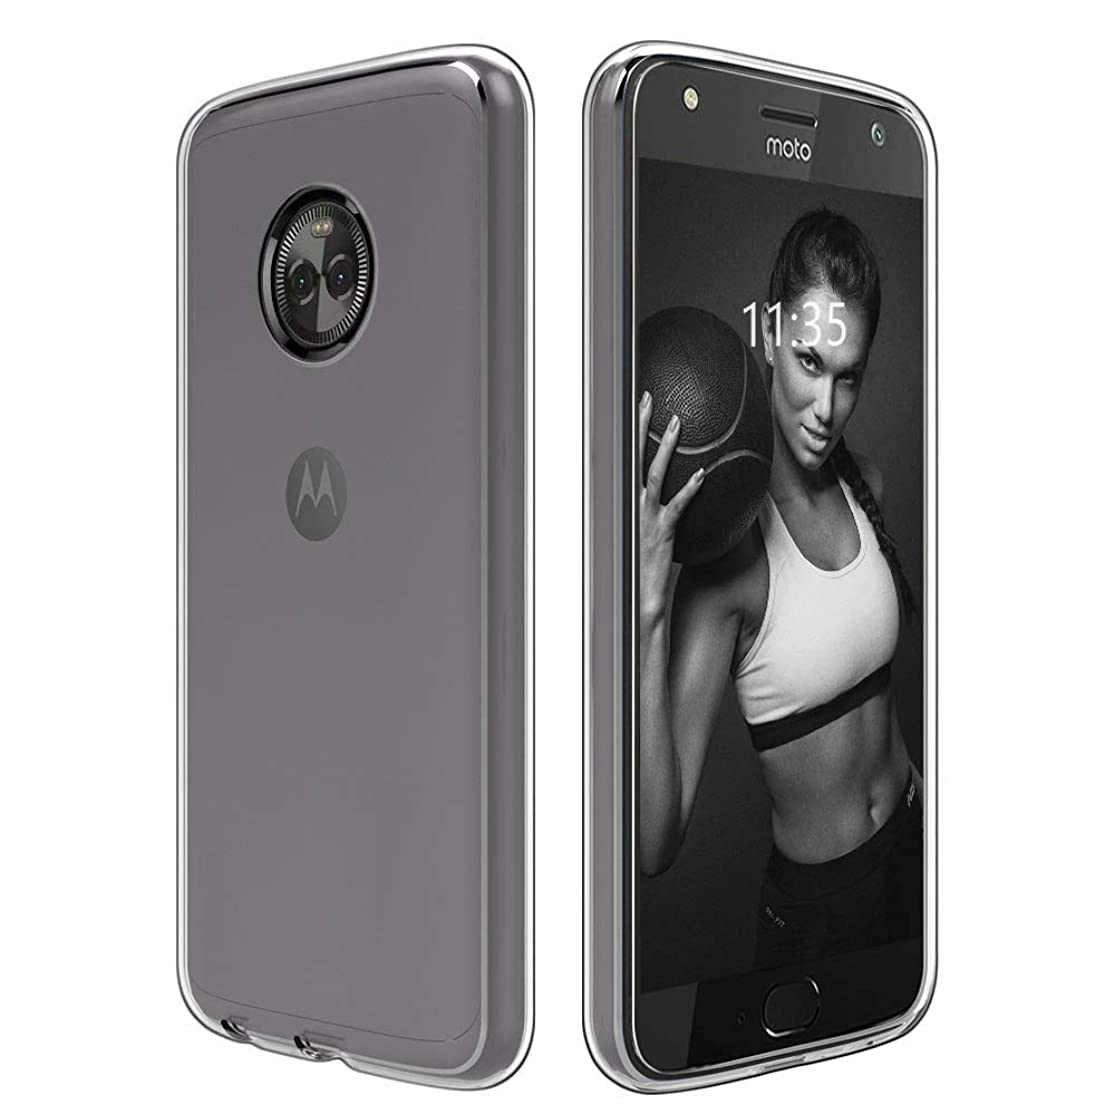 Moto X4 Case, Slim Thin Soft Skin Silicone Flexible Soft TPU [Camera Protection] Shock Absorption Technology Raised Bezels Anti-Scratches Protective Cases -Clear nlpywdbu6